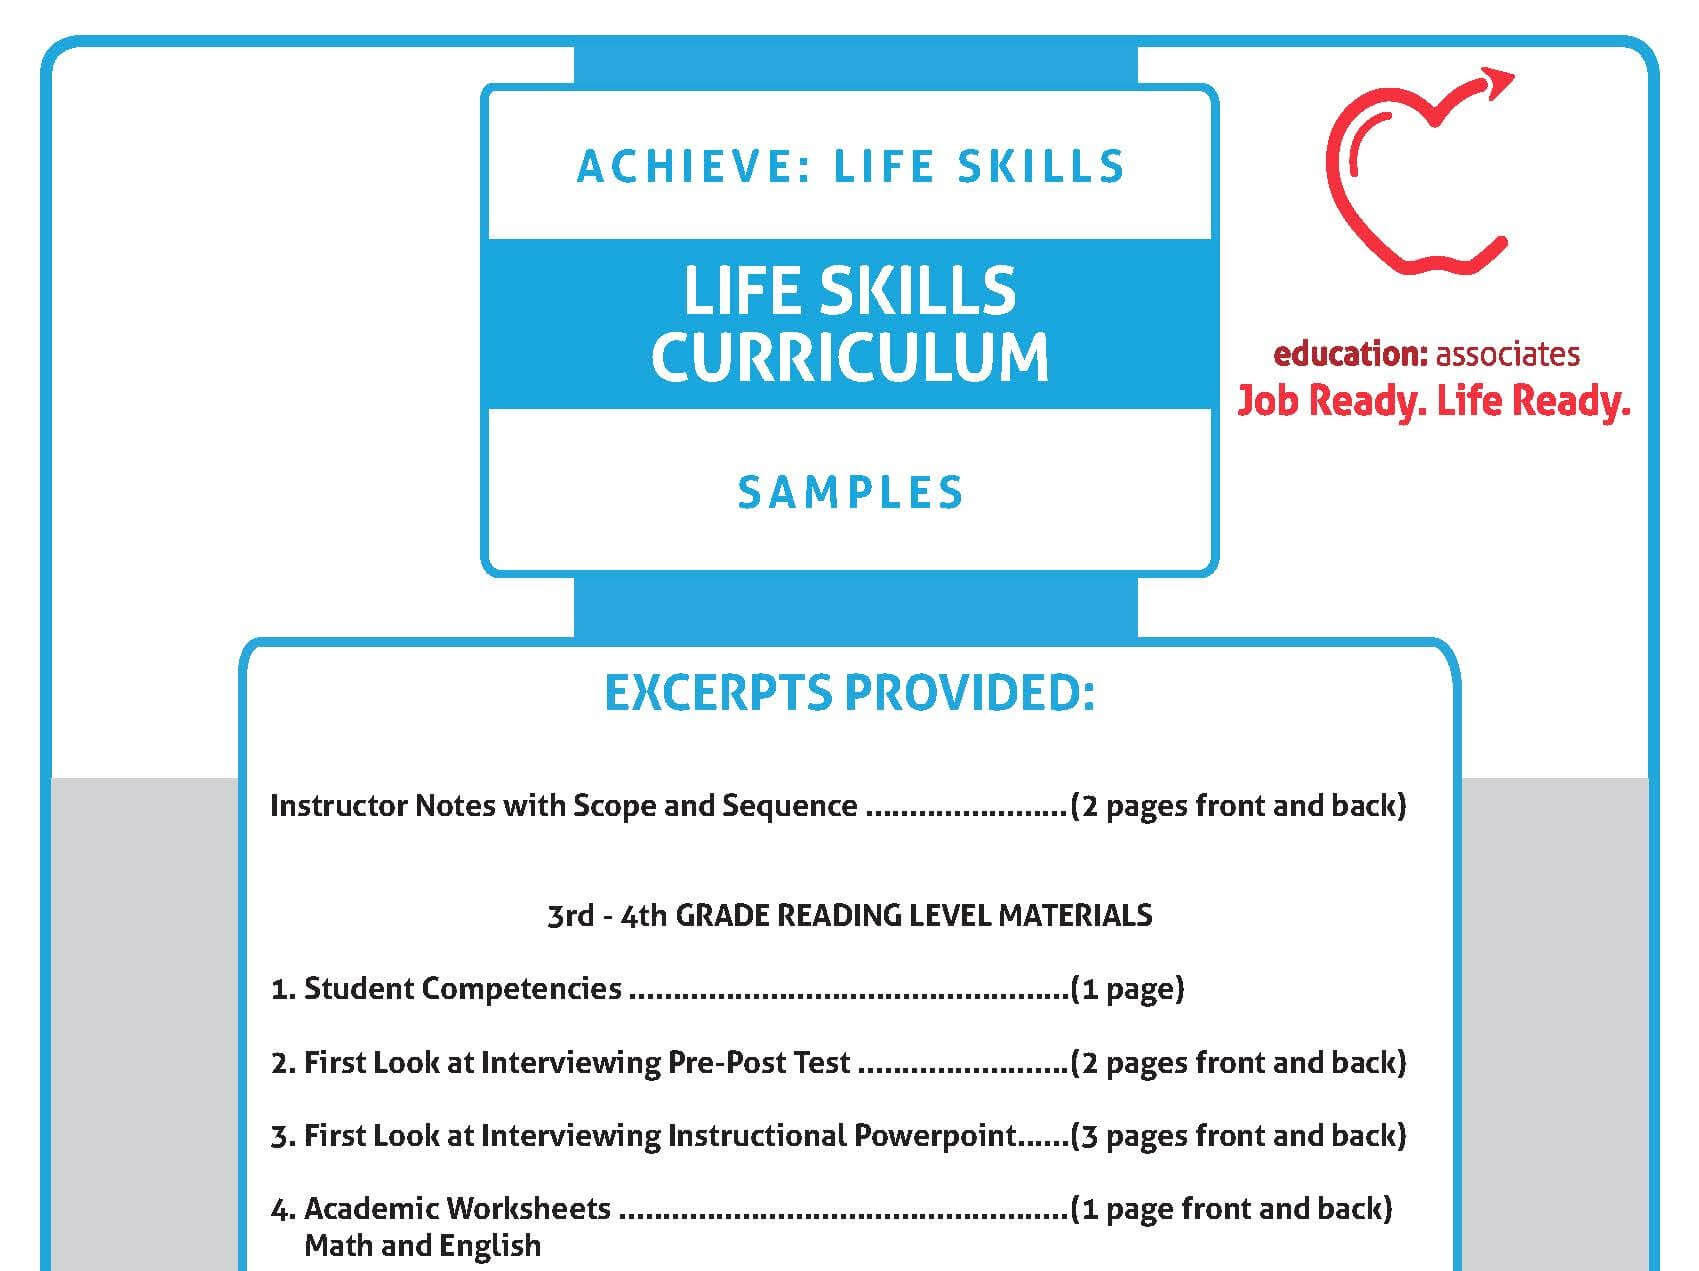 Curriculum Samples – Education Associates